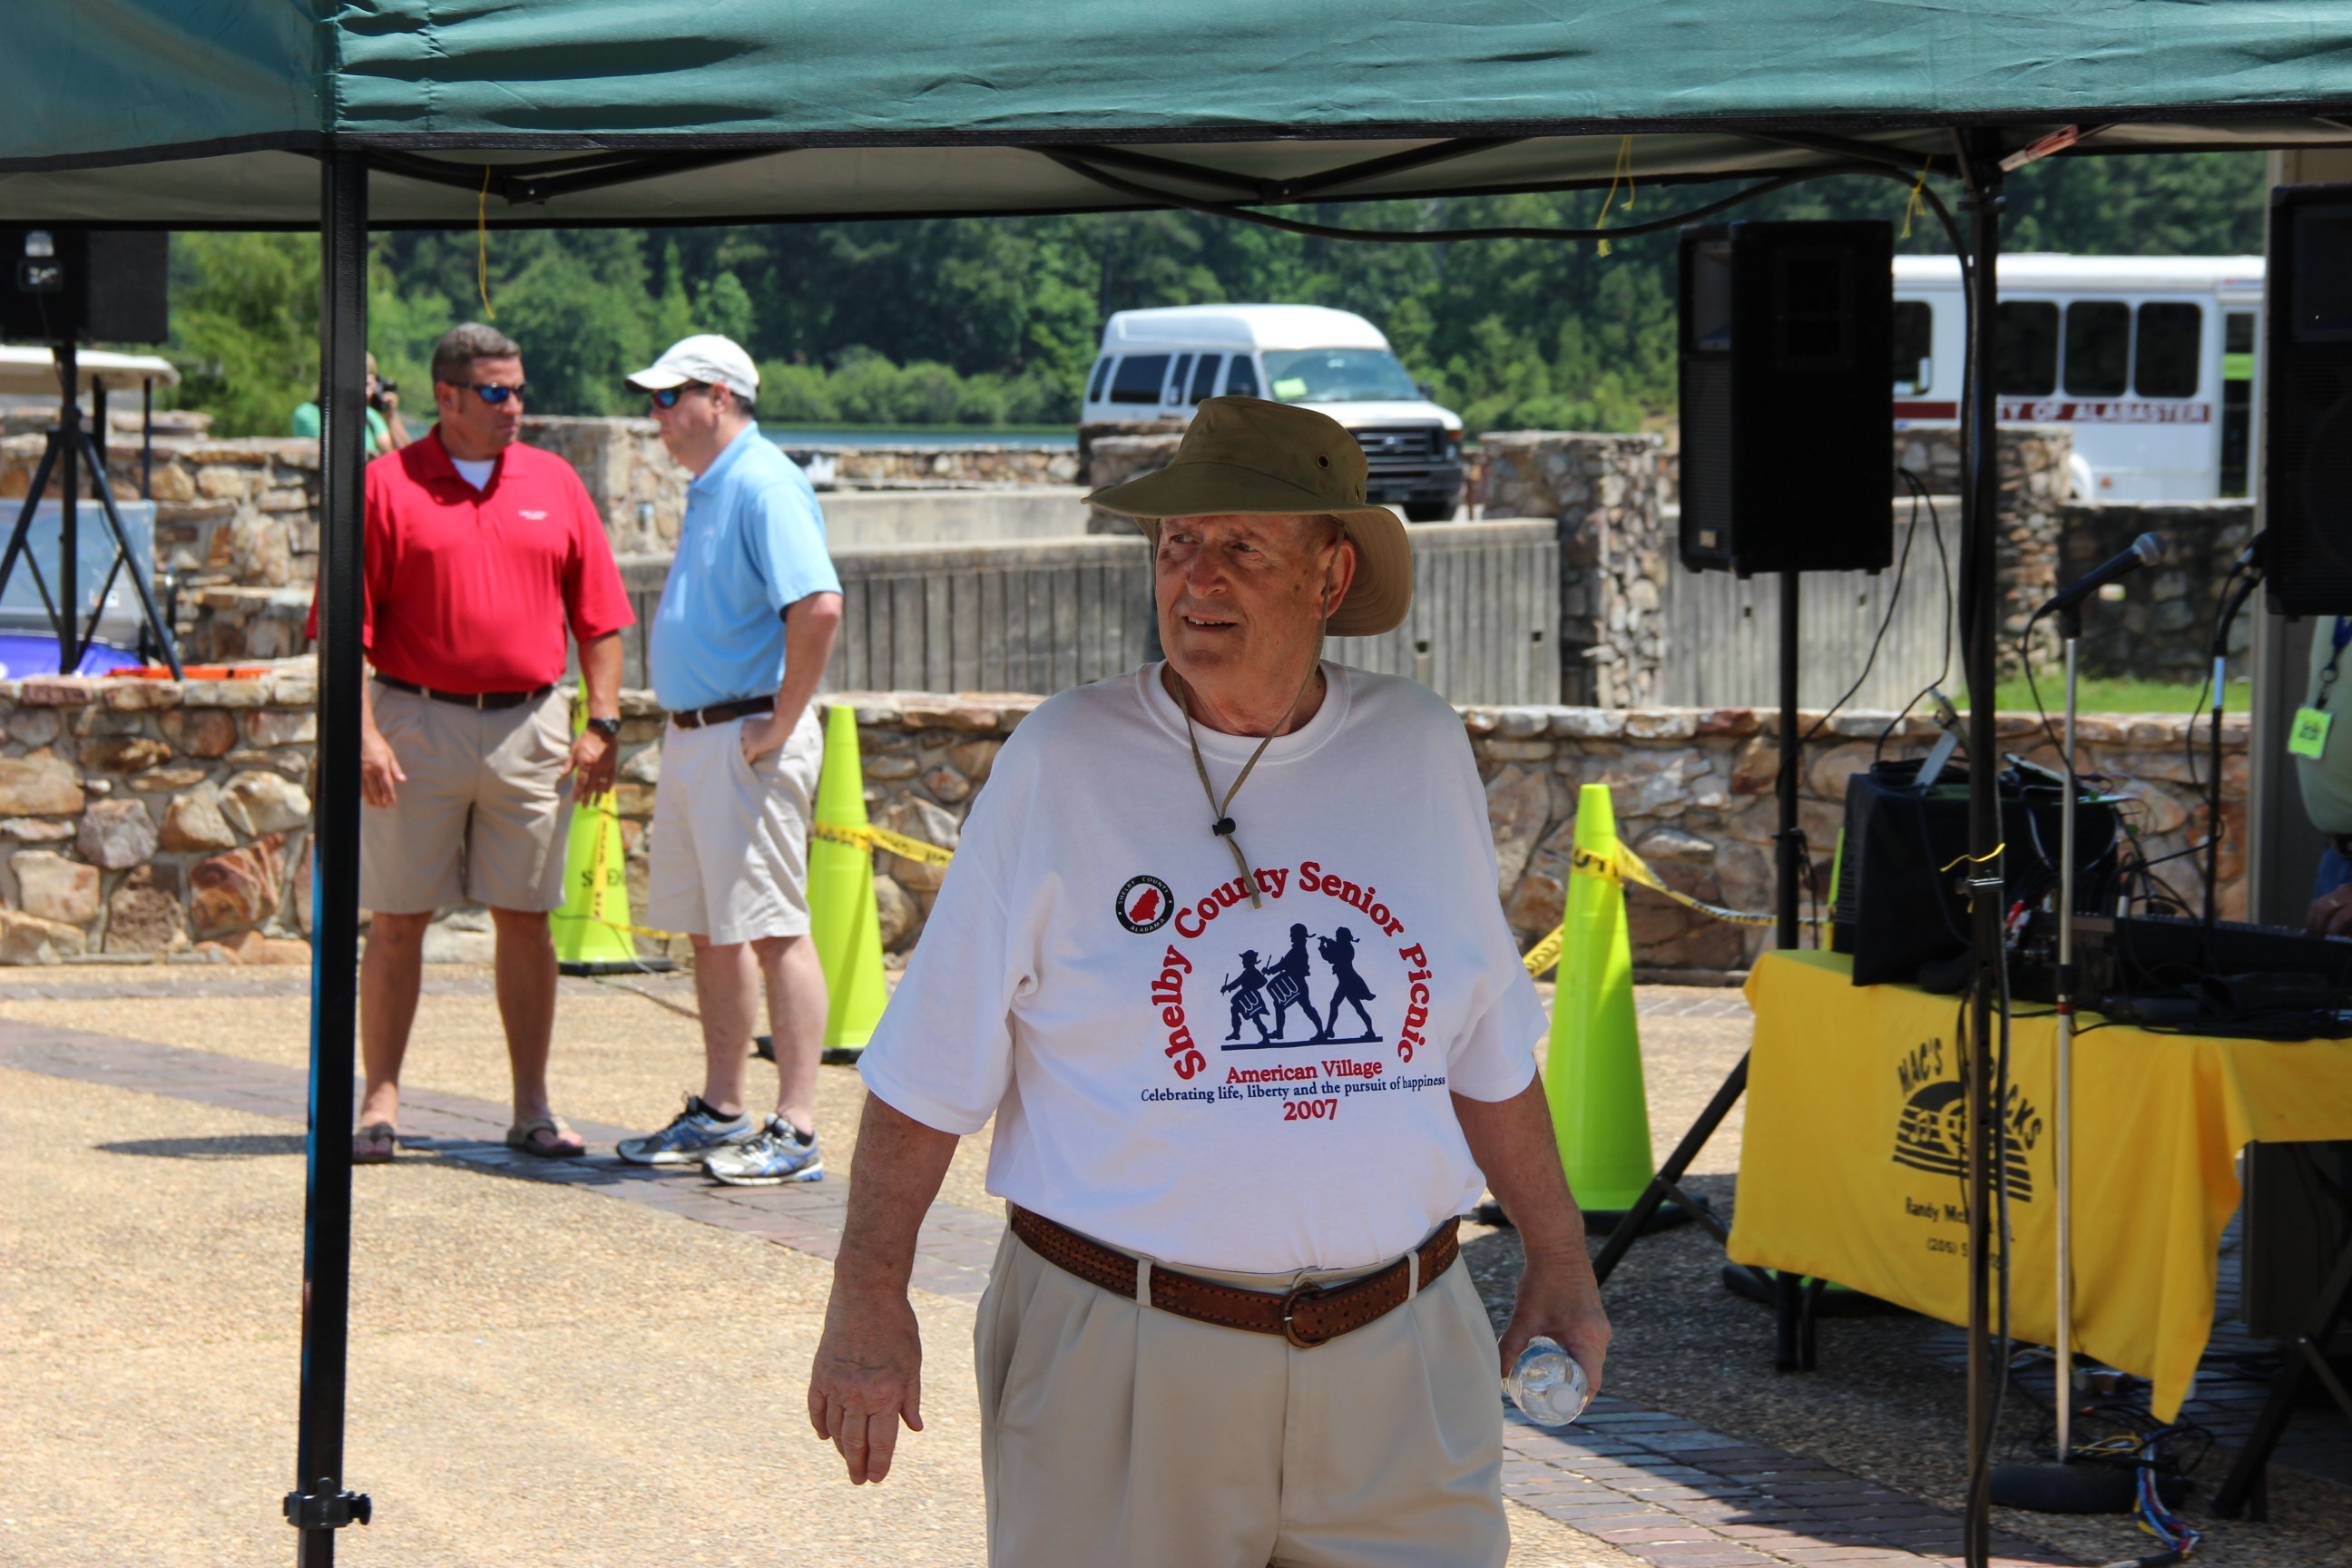 Image of Marvin Copes at the 2014 Senior Picnic at Oak Mountain State Park